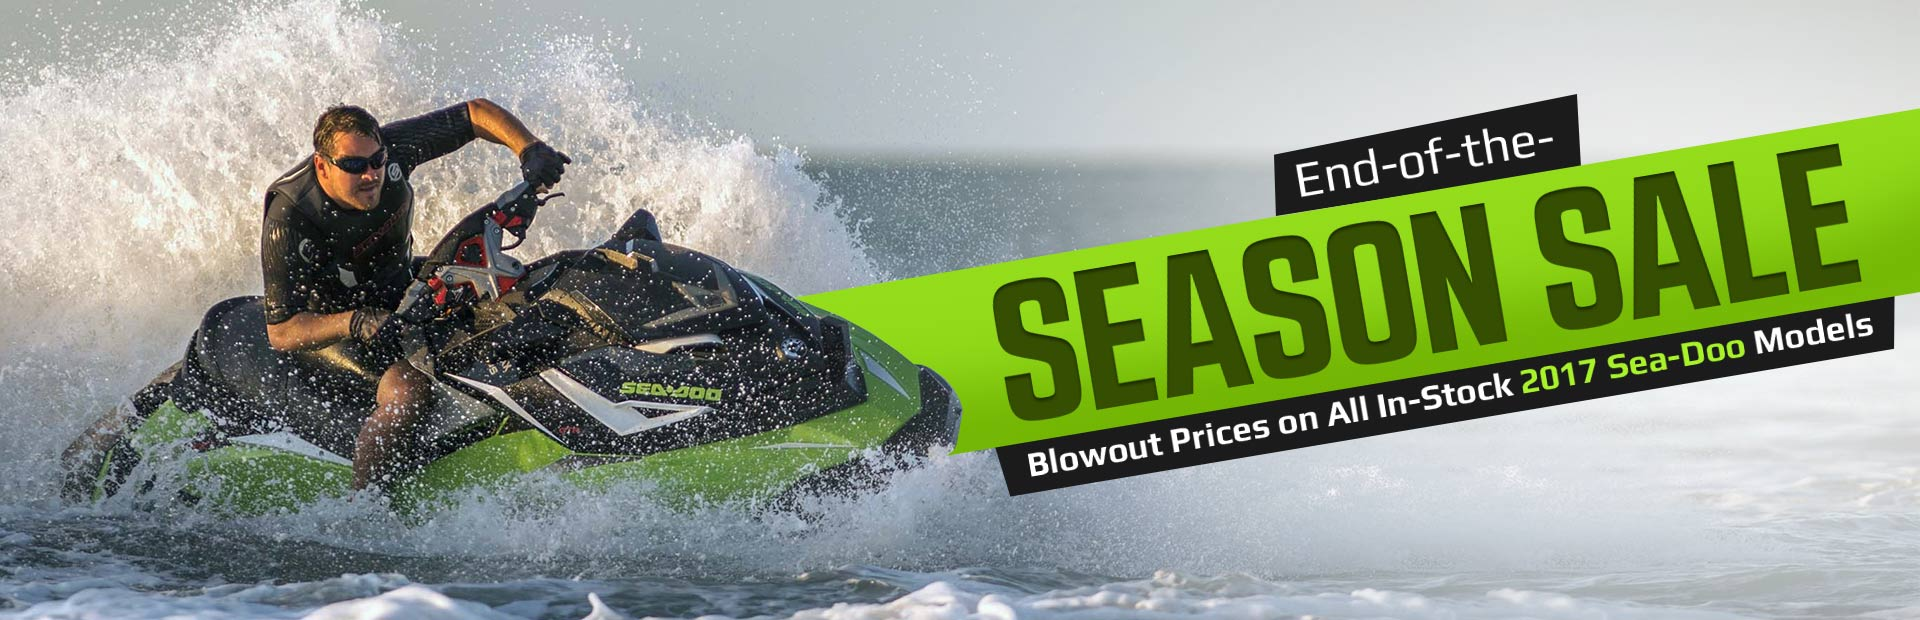 End-of-the-Season Sale: Blowout Prices on All In-Stock 2017 Sea-Doo Models